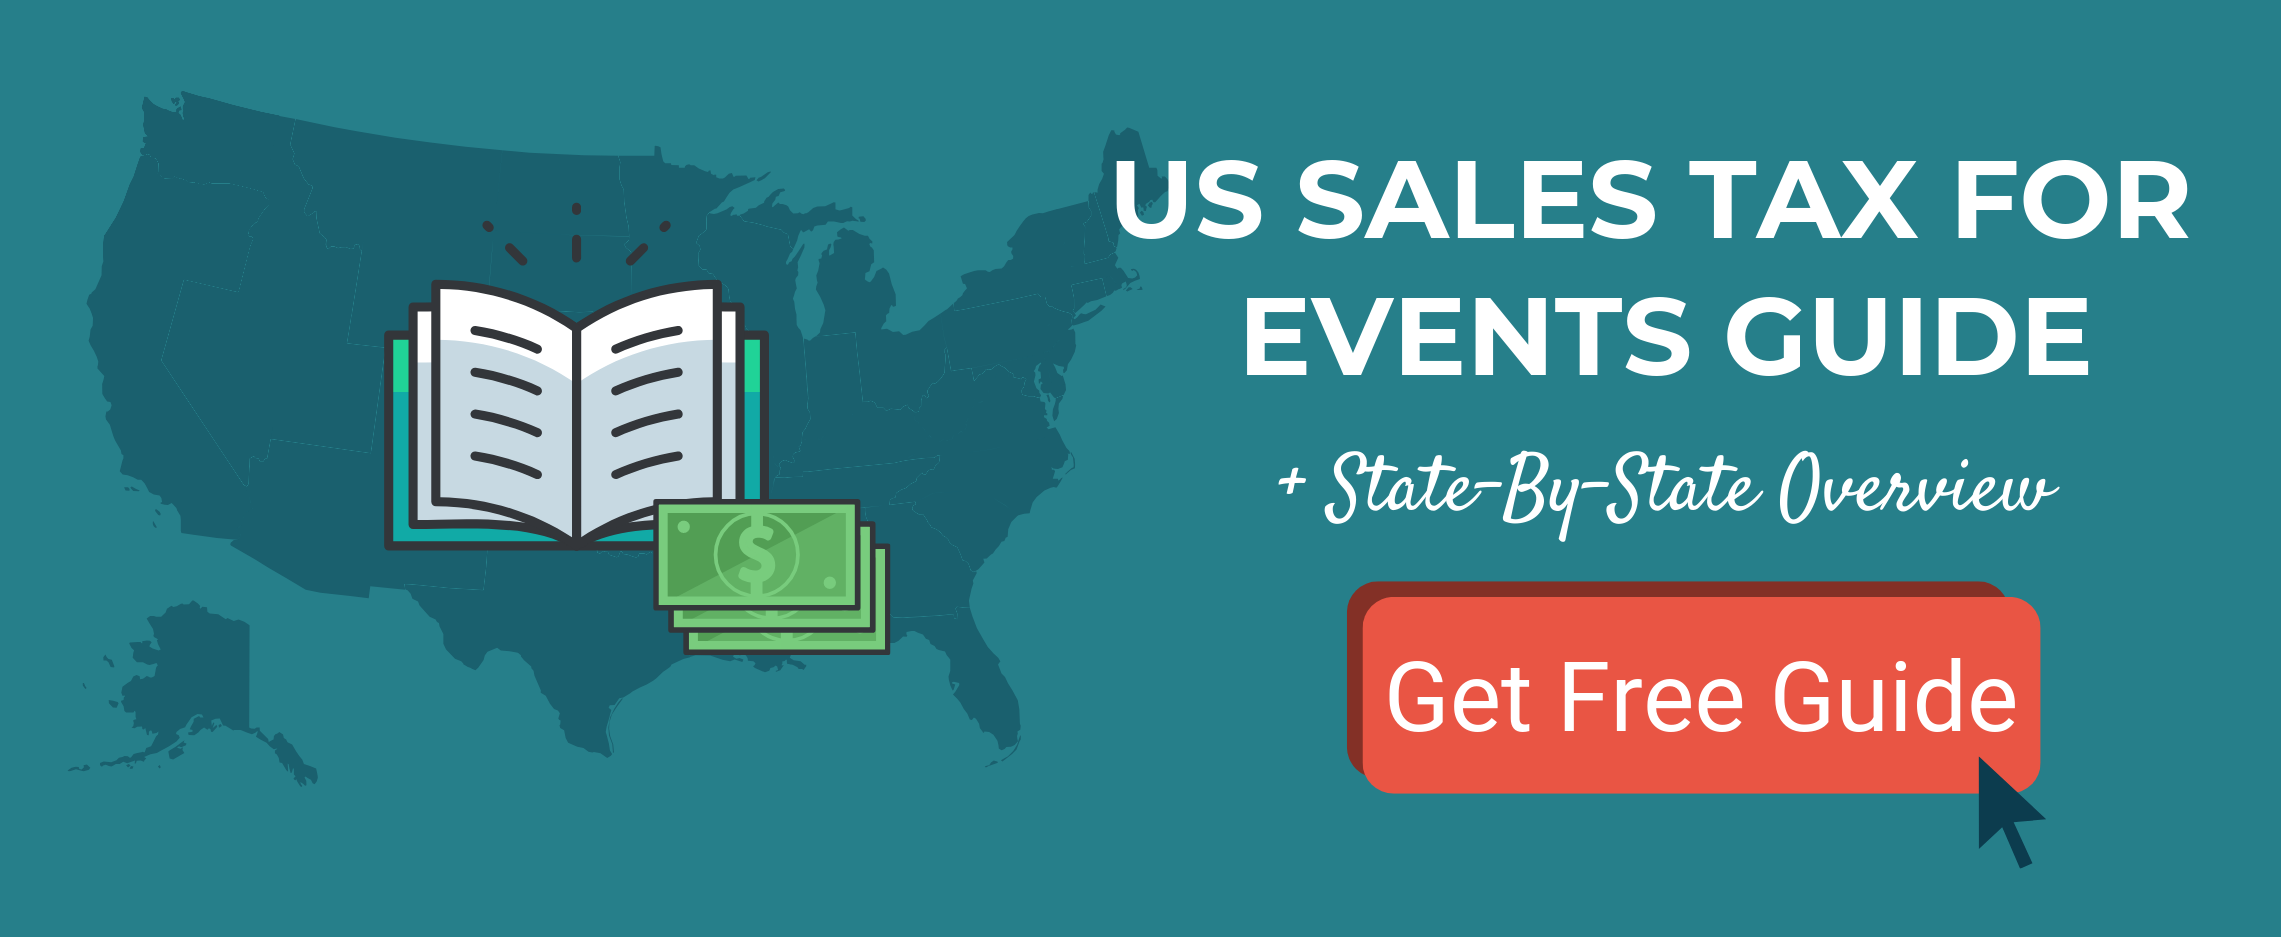 US Sales Tax For Events Guide